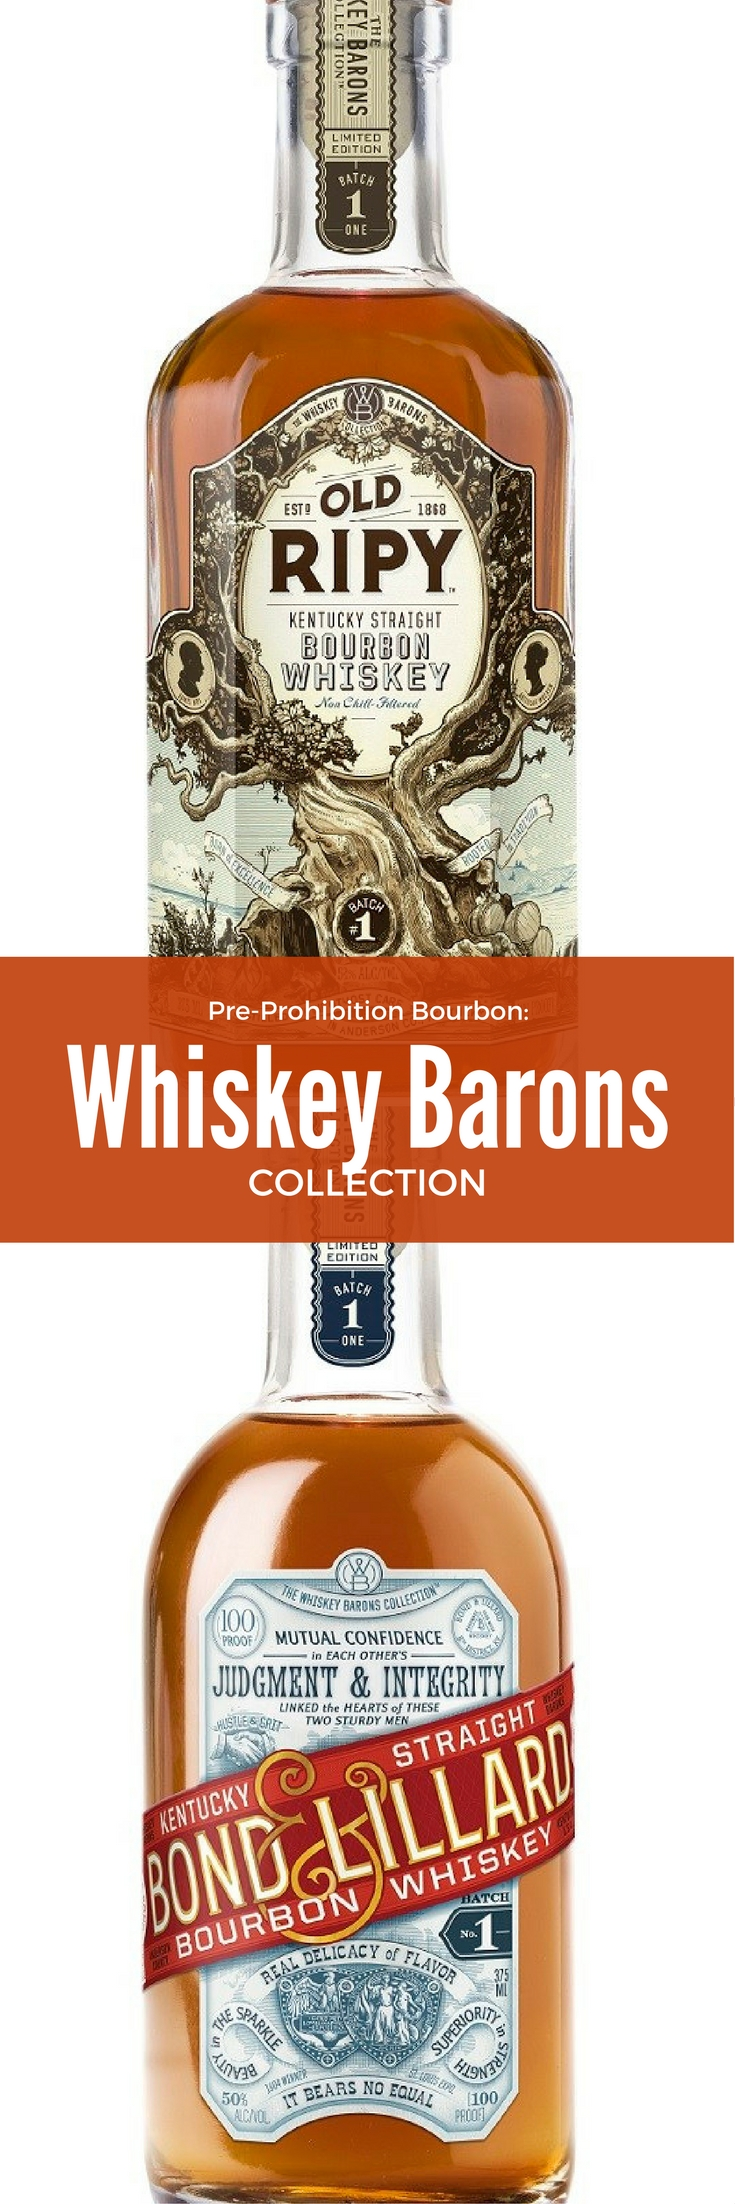 Campari America Launches Whiskey Barons Collection | Bevvy